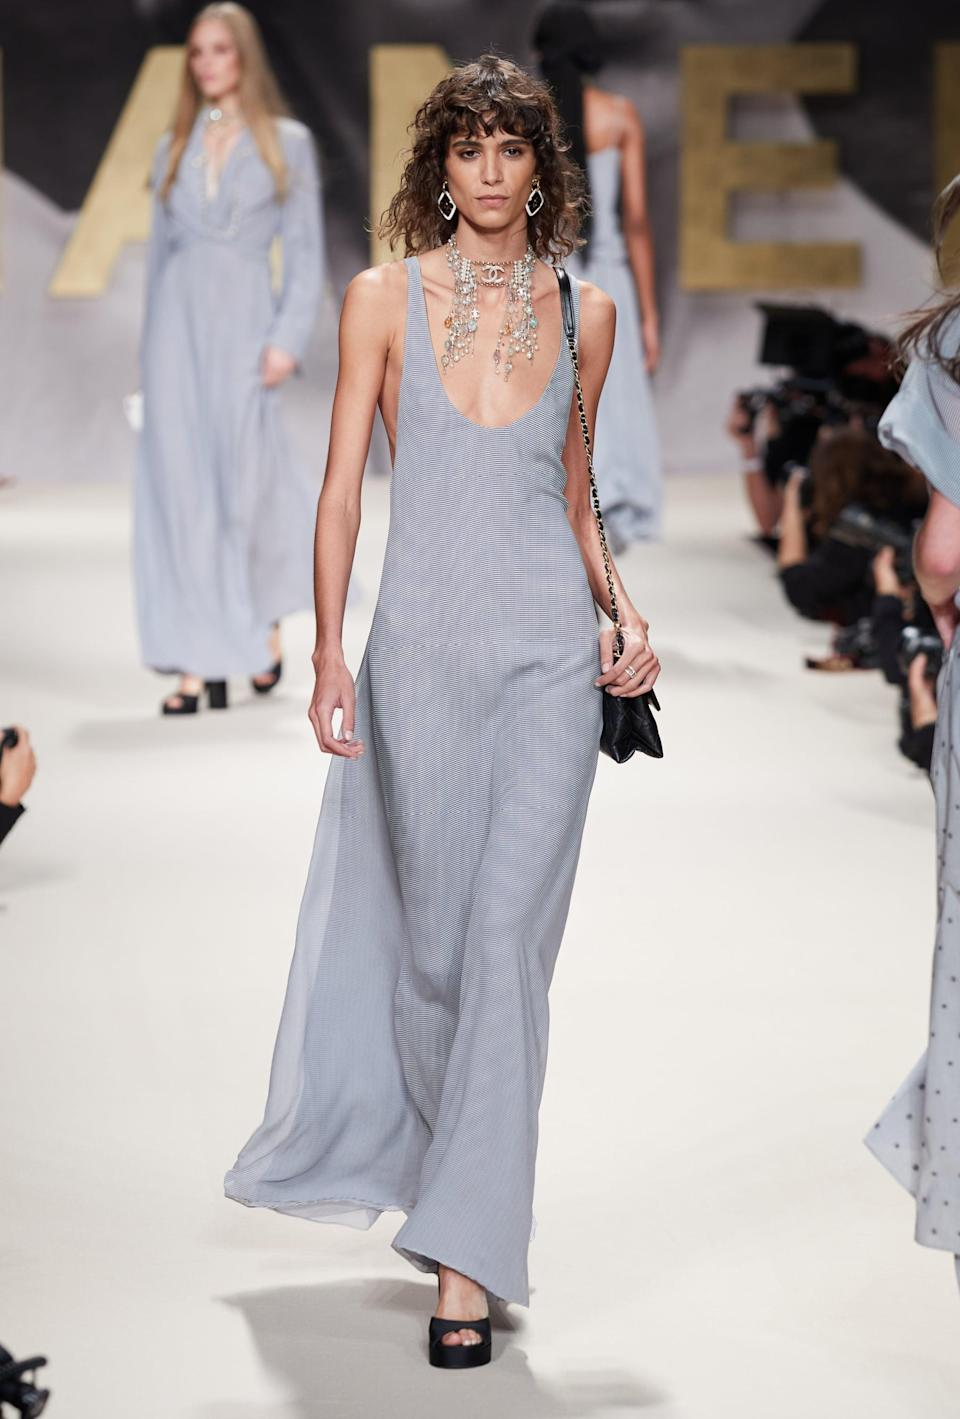 <p>Imagine grocery shopping in this maxi dress, casually channeling red carpet-Zendaya. </p>